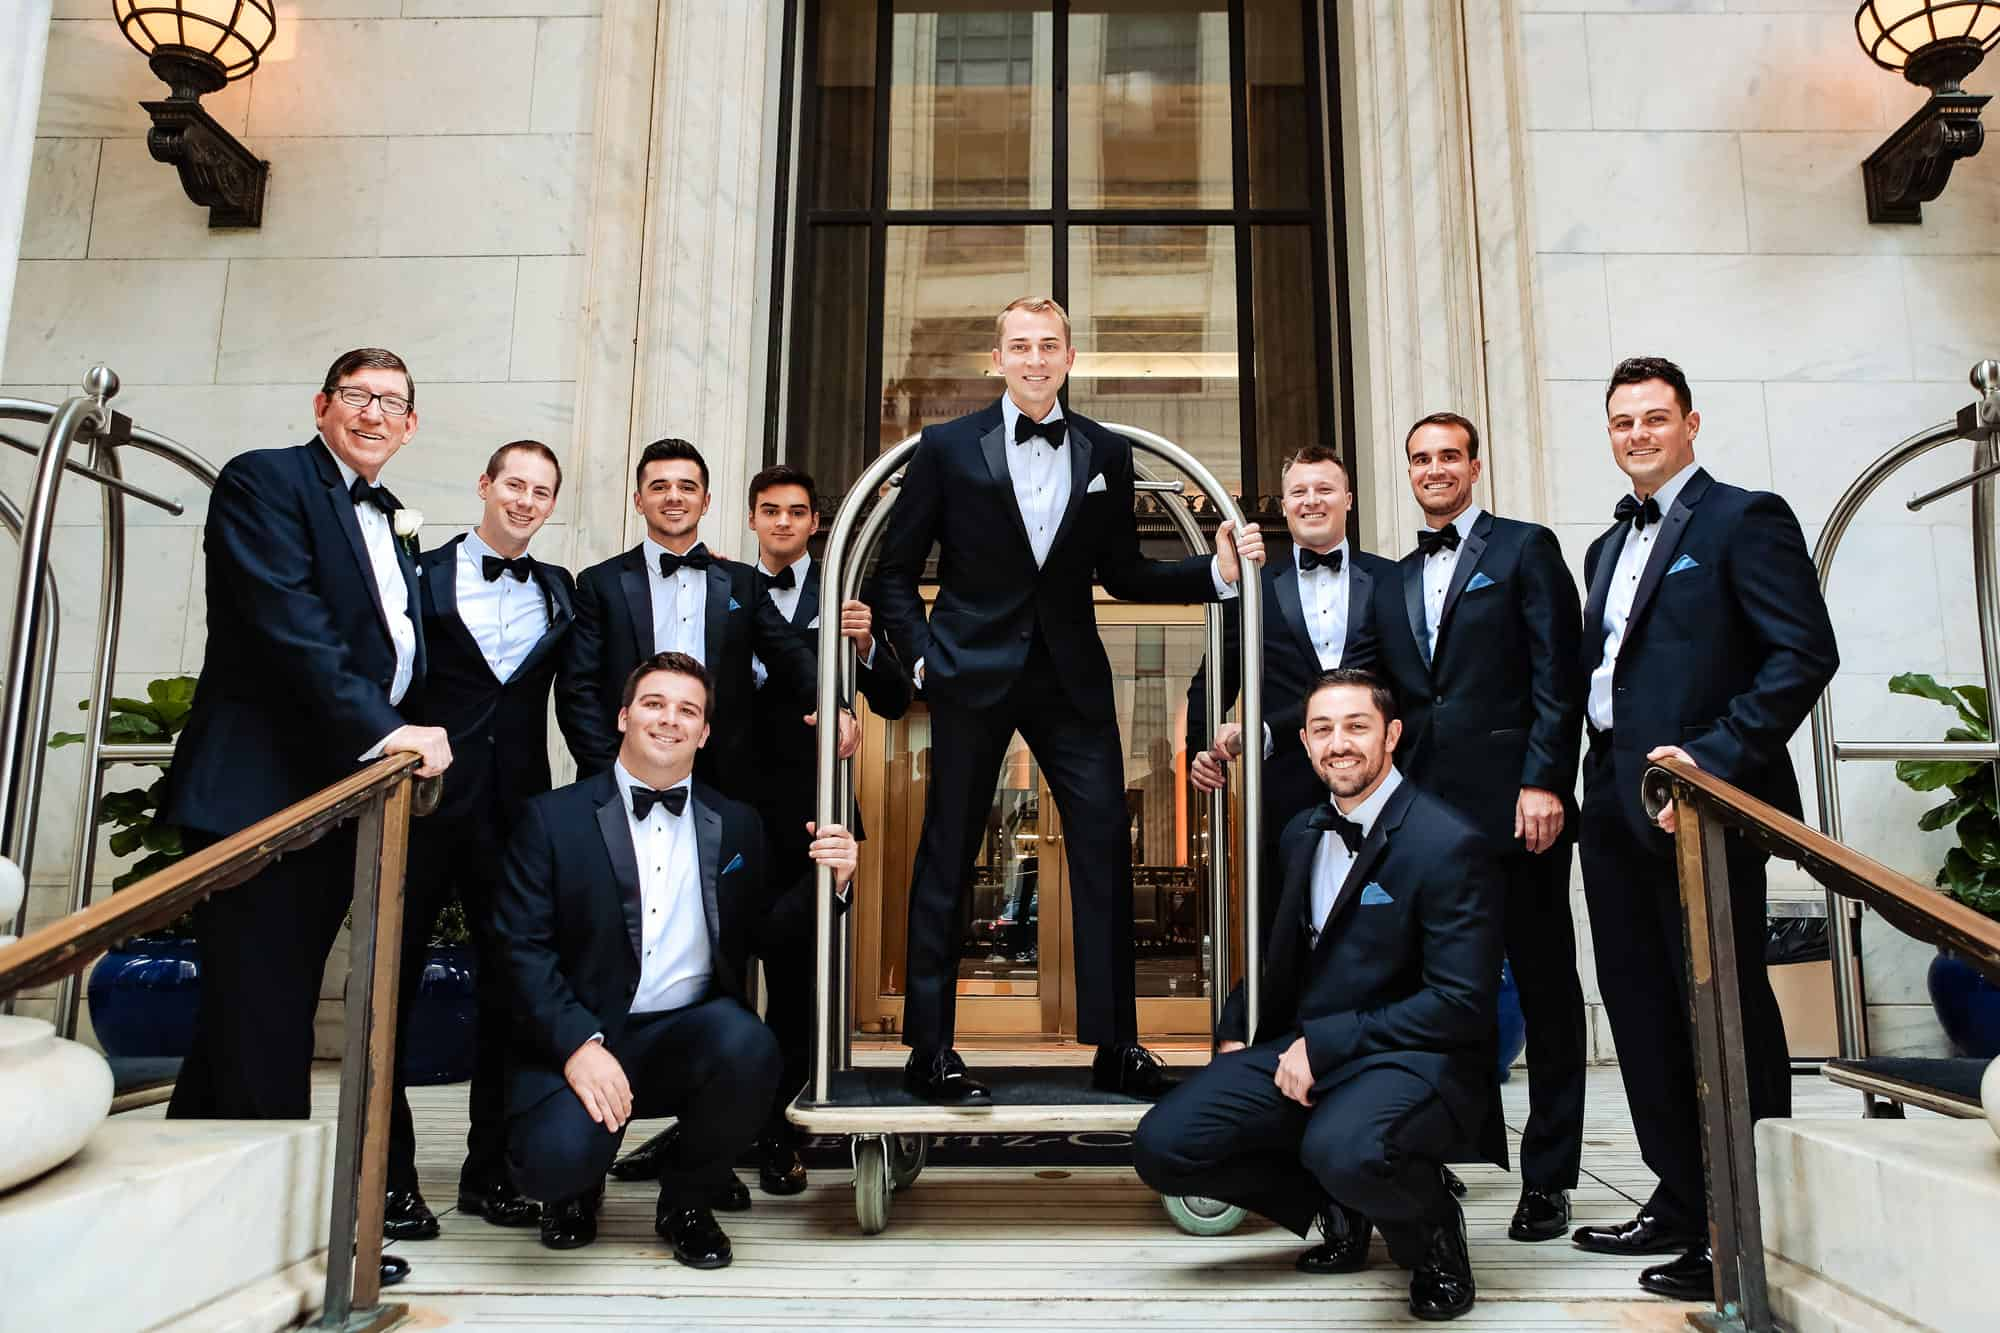 Ritz Carlton Philadelphia Wedding|groom and groomsmen using luggage cart for photo